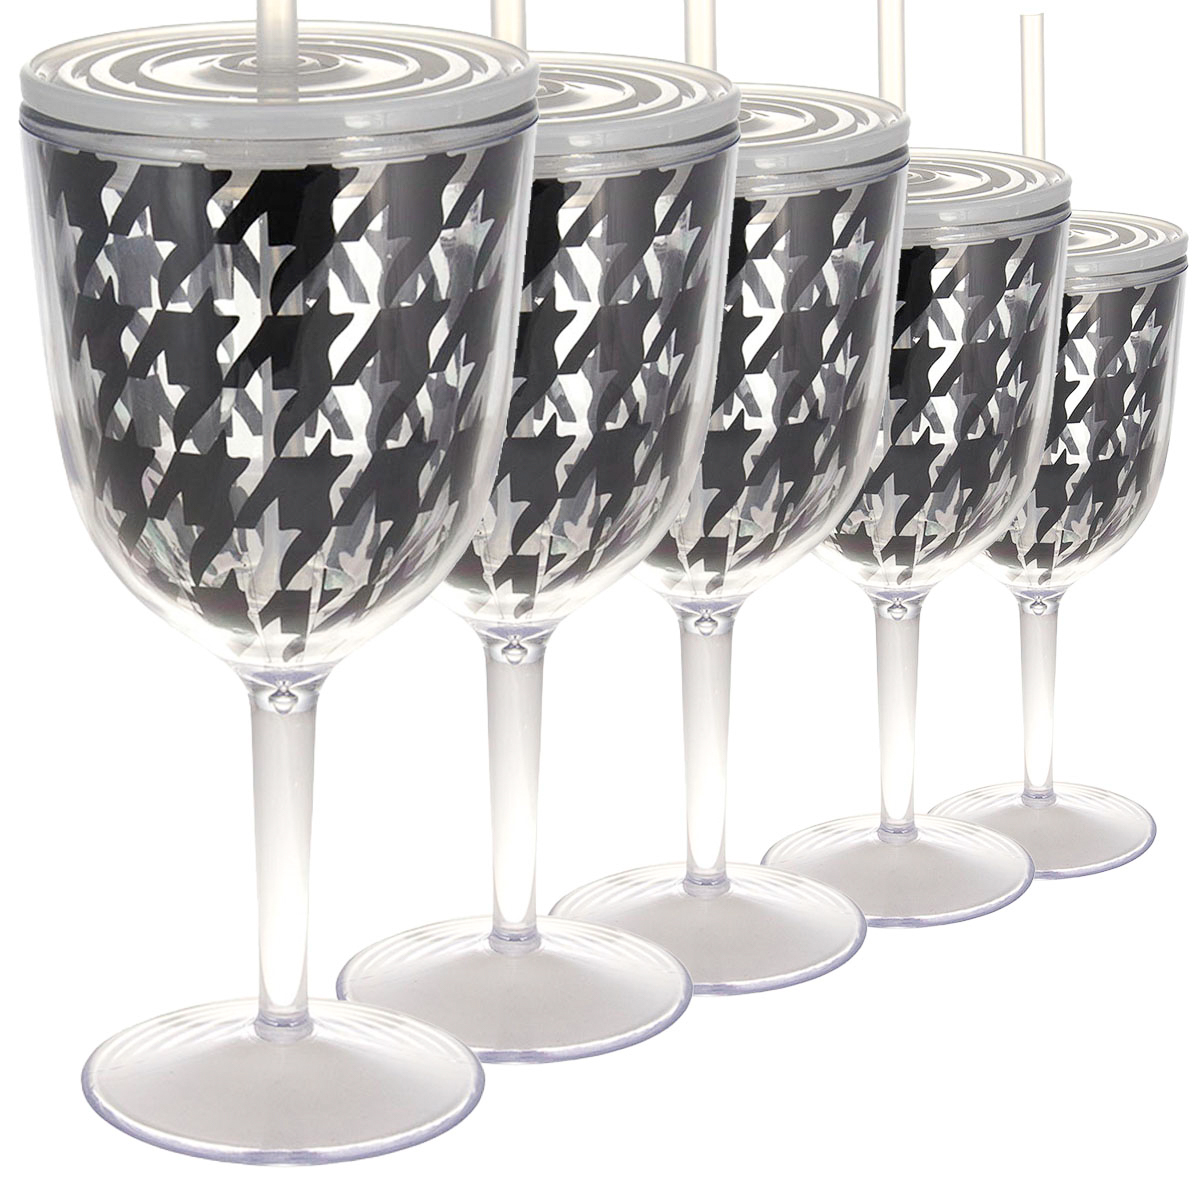 Set of 6 Black Houndstooth 13oz Wine Glasses With Lids Straws Double Wall Insulated Reusable Acrylic